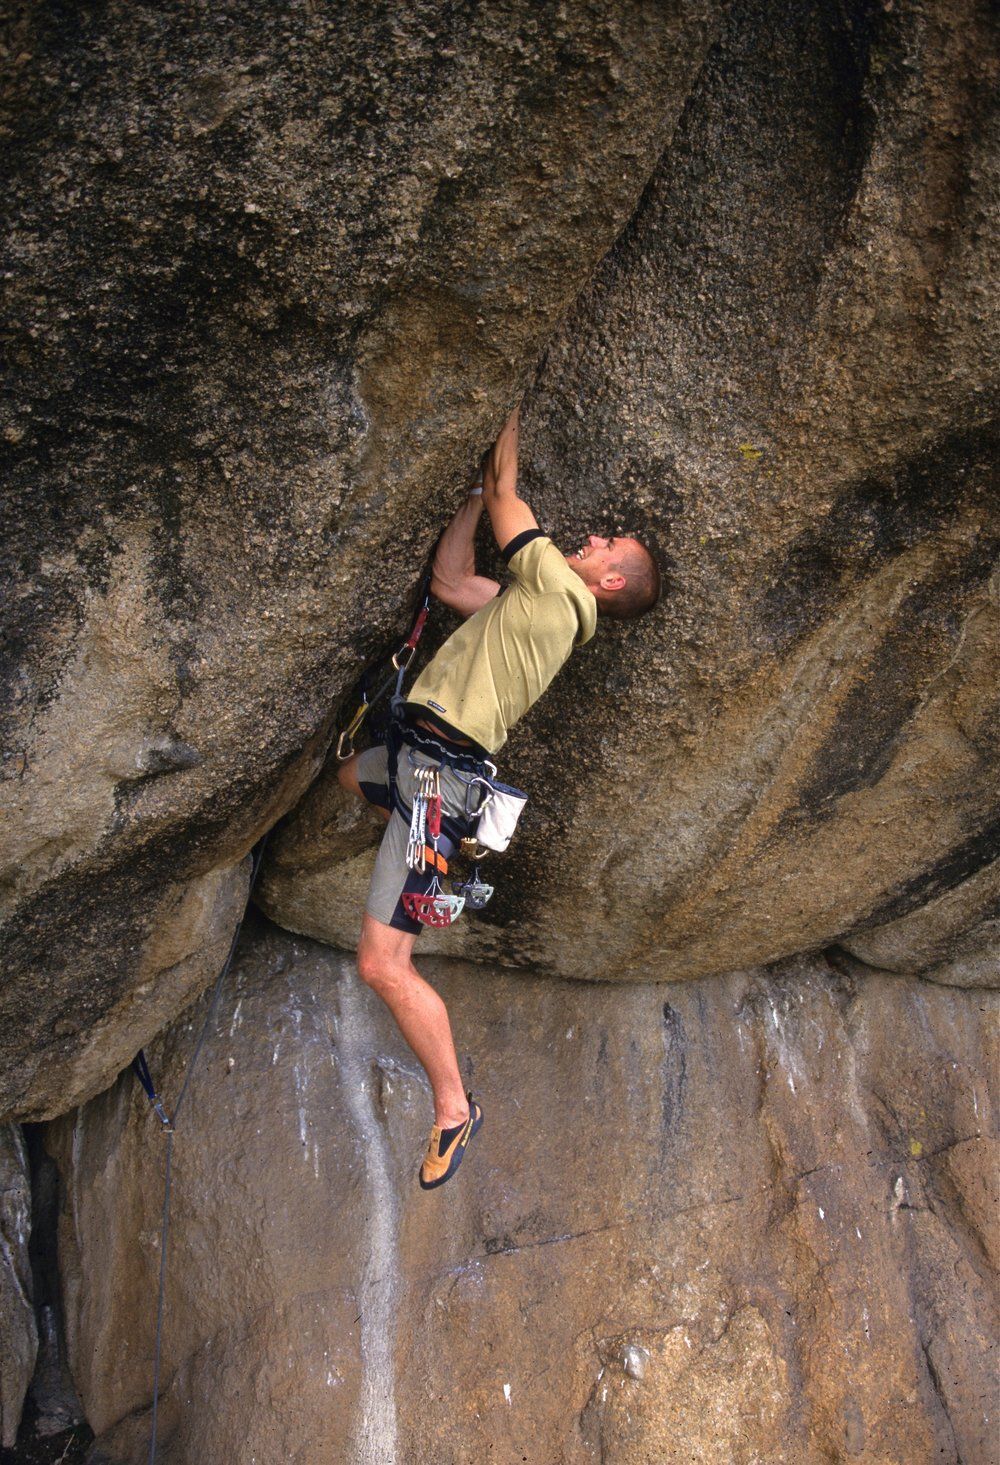 Ulan Battered E5 6b, Ghorki Park. First ascent in 2001.  Photo: Mike Robertson